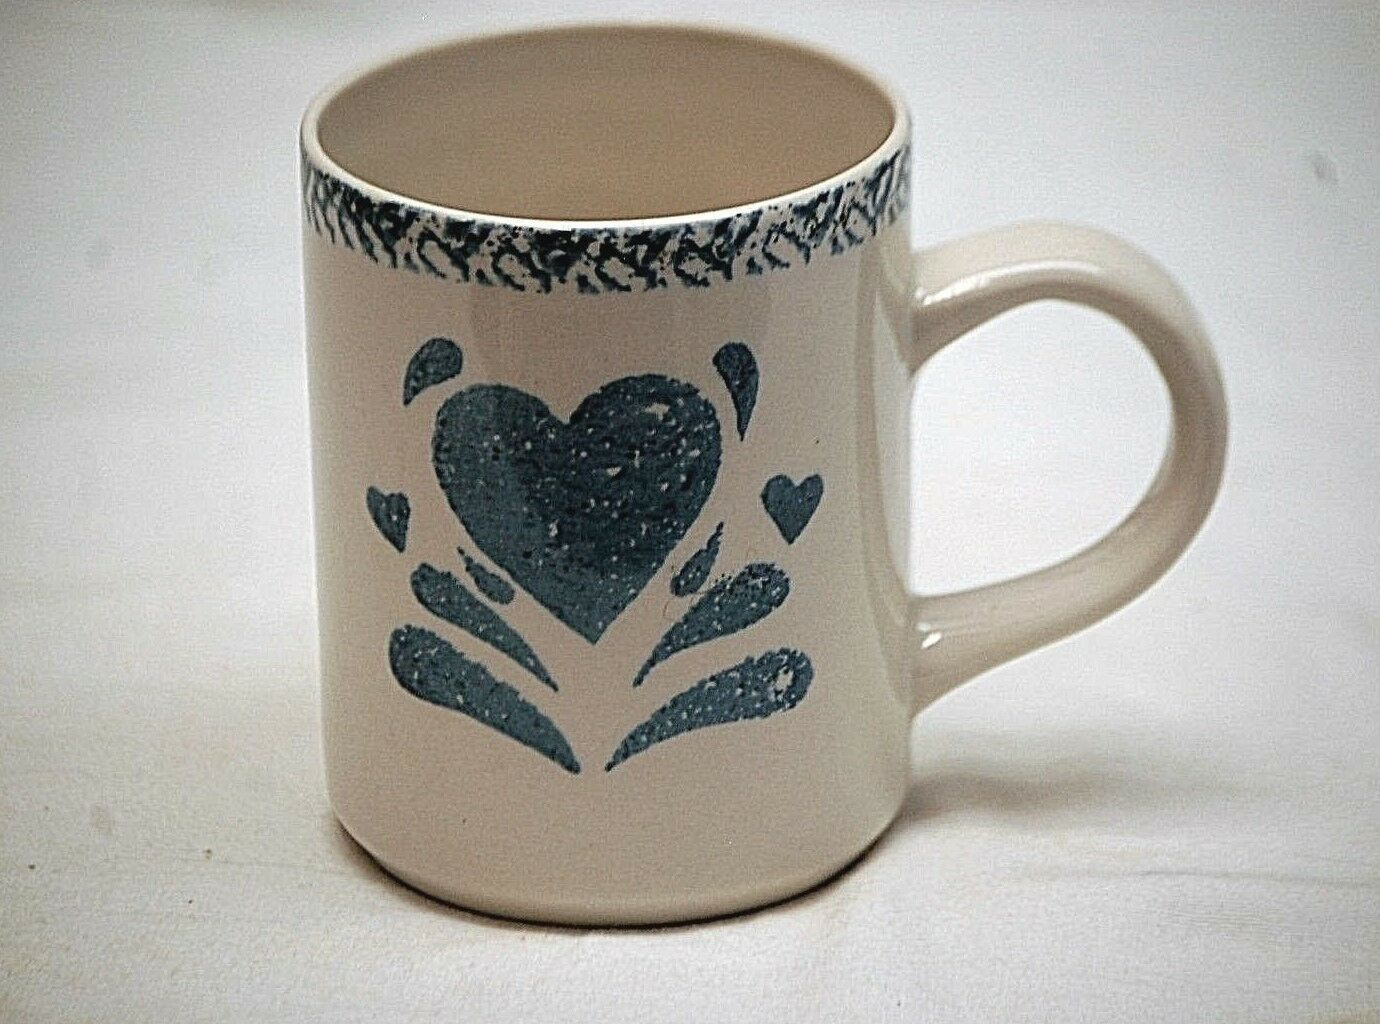 "My Heart Gibson Designs 4"" Coffee Cup Chocolate Mug Sponged Blue Heart Stoneware - $8.90"